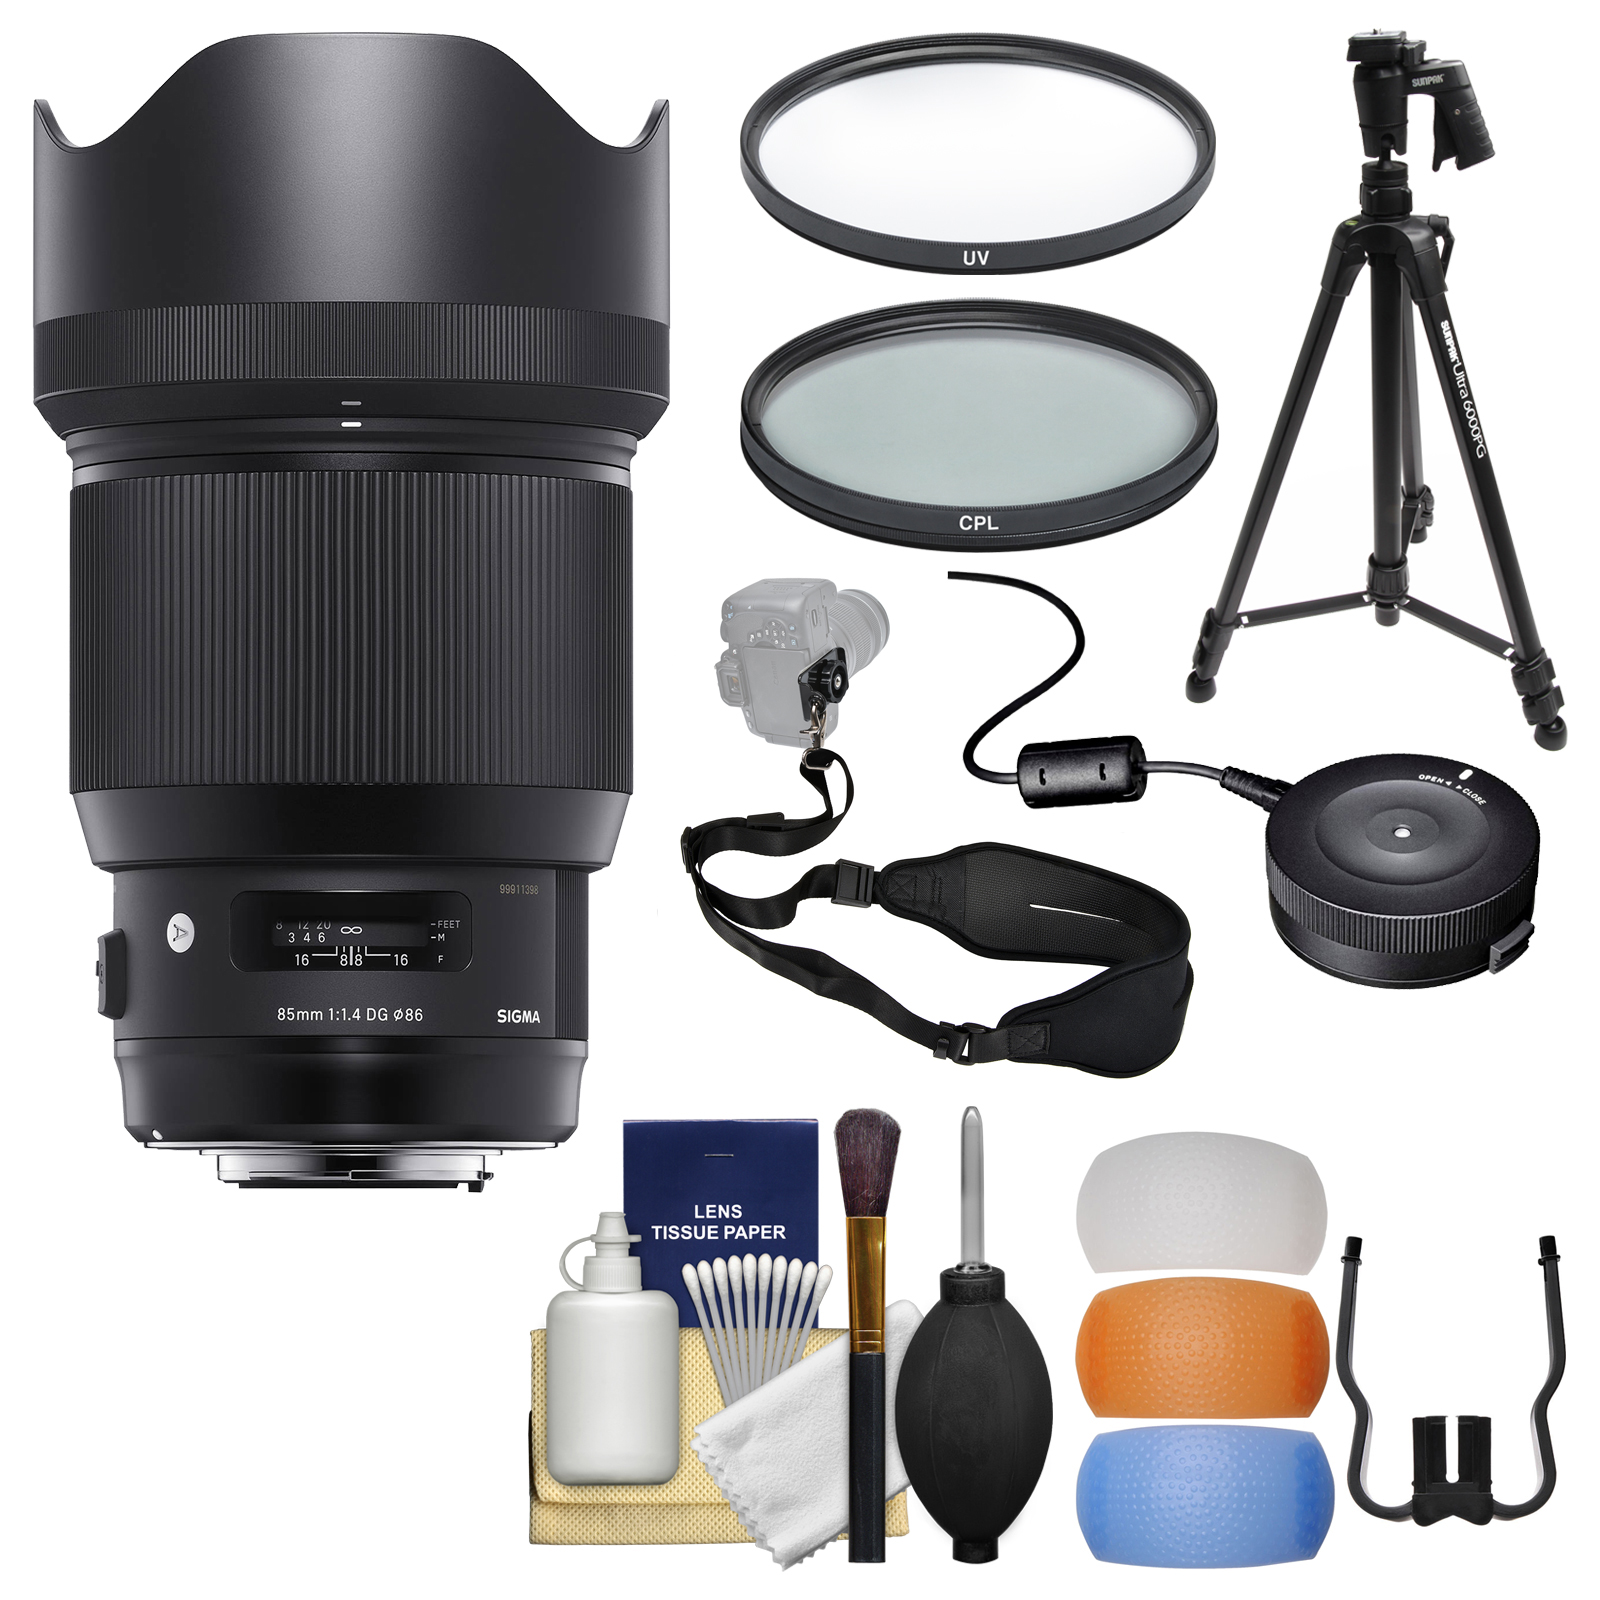 Sigma 85mm f/1.4 ART DG HSM Lens with USB Dock + Tripod + 2 (UV/CPL) Filters + Flash Diffusers + Sling Strap + Kit for Canon EOS Digital SLR Cameras